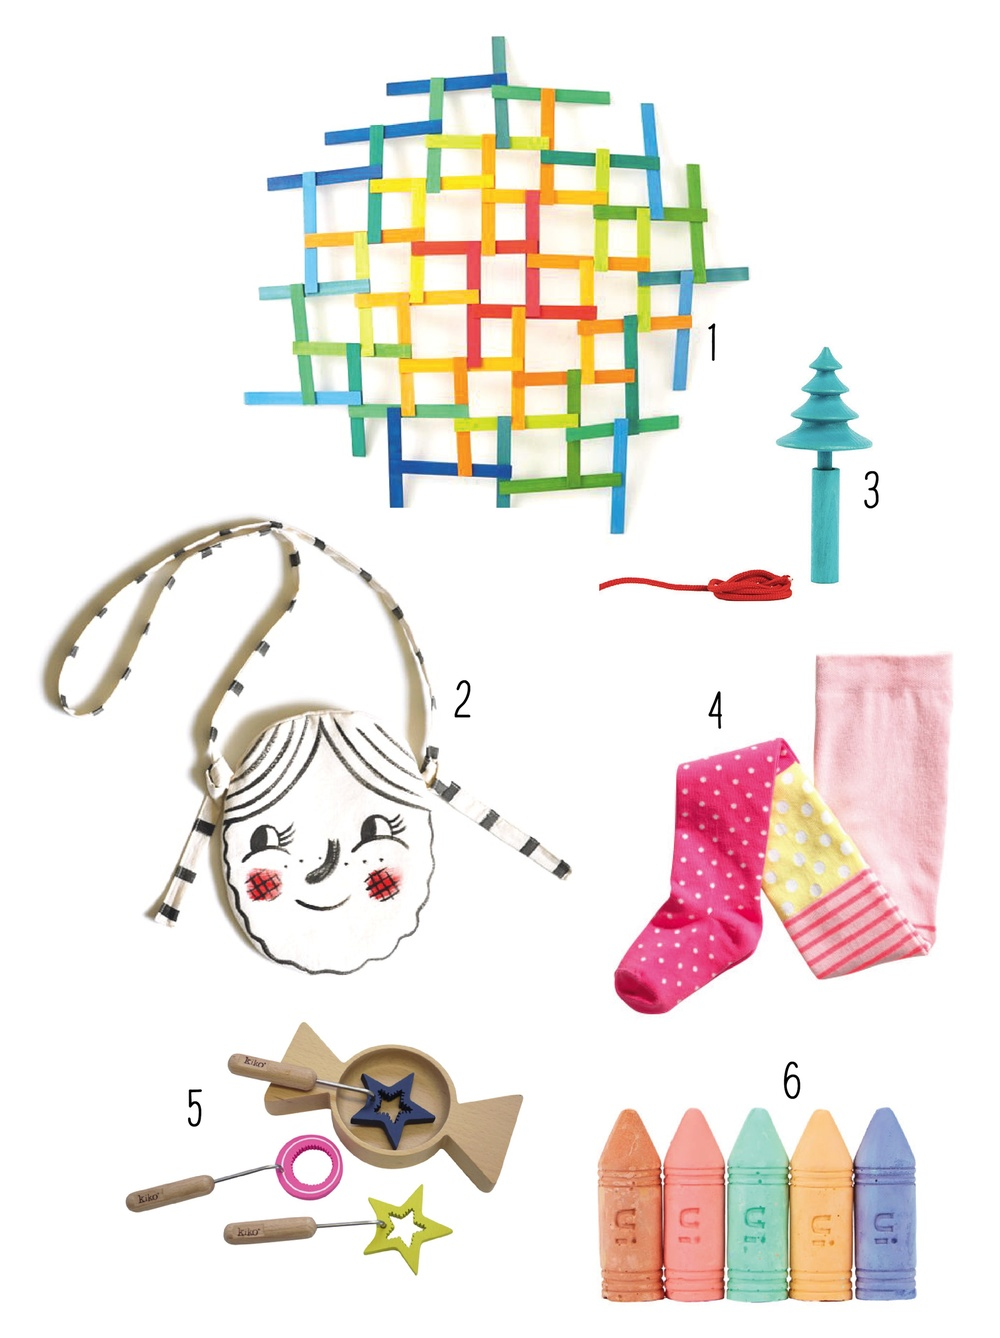 Stocking stuffer ideas for girls! | And We Play